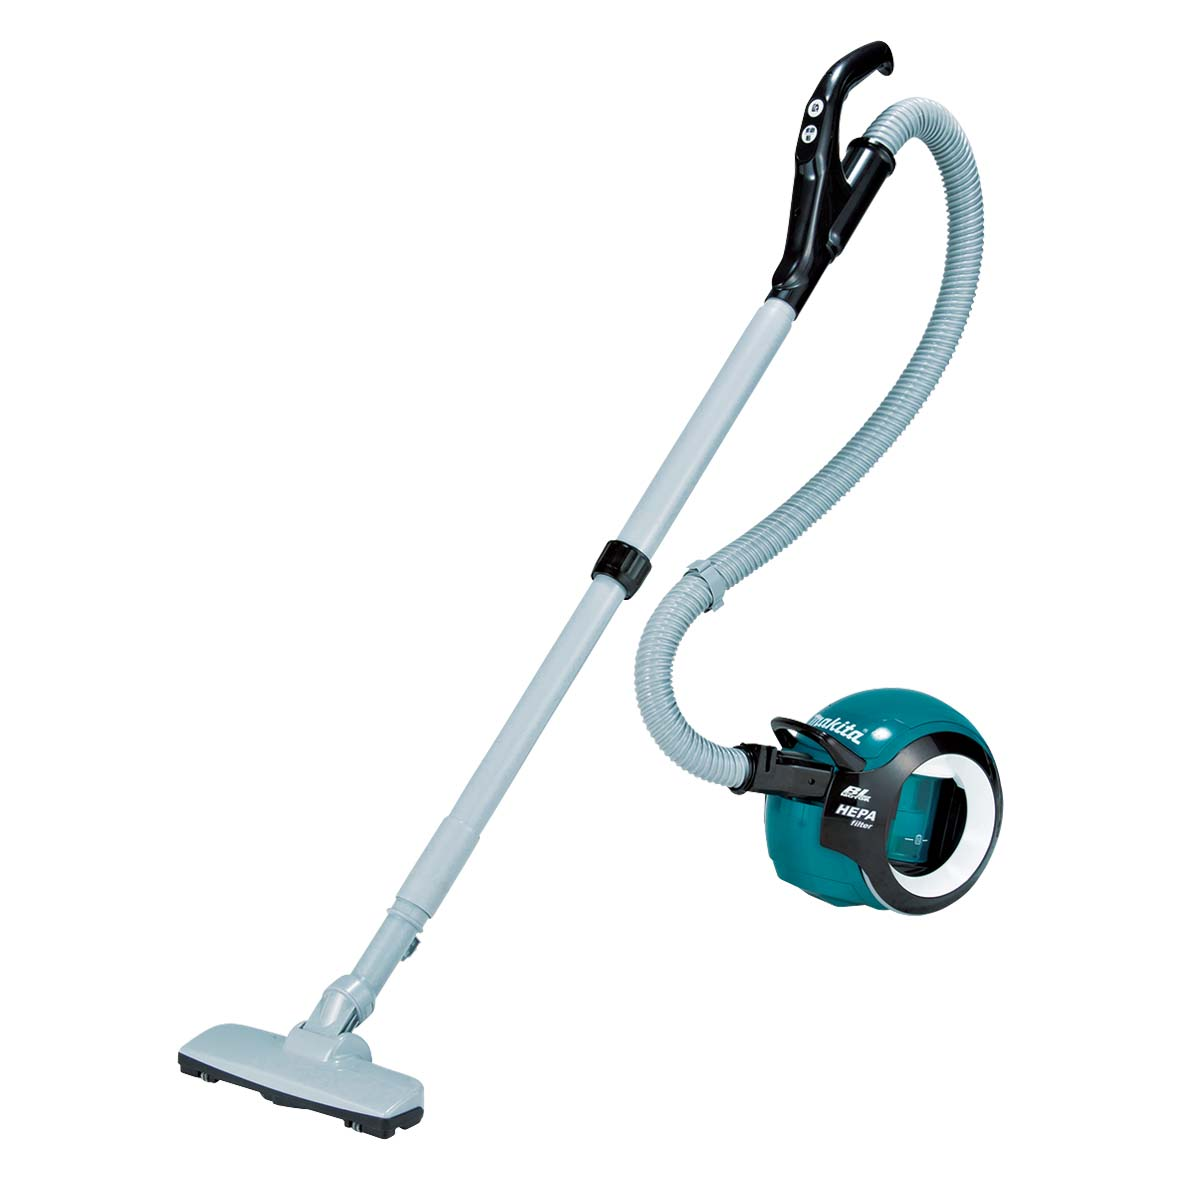 Makita 18V Mobile Brushless Cyclone Vacuum - DCL501Z